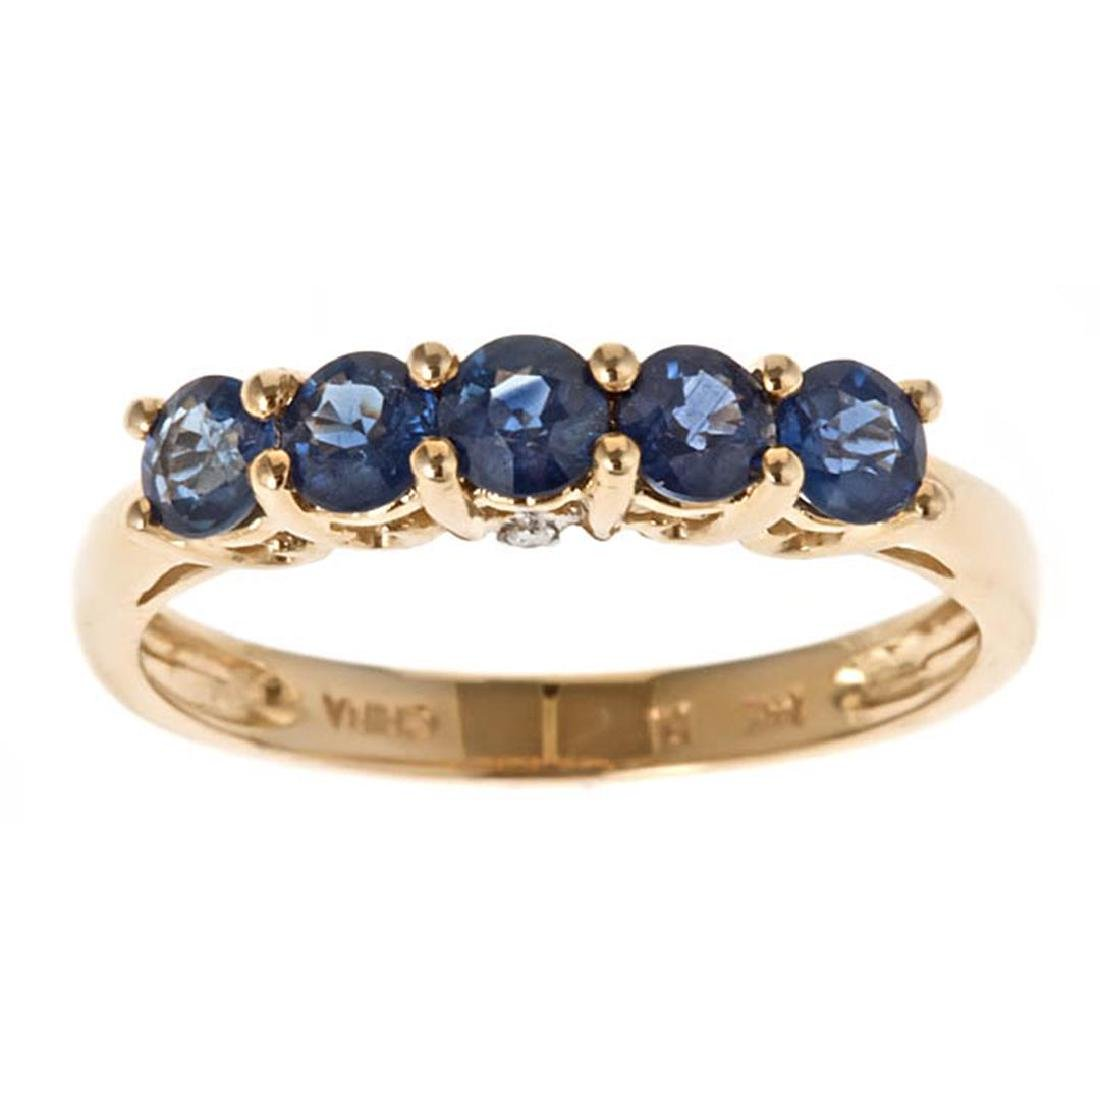 1.04 ctw Sapphire and Diamond Ring - 14KT Yellow Gold